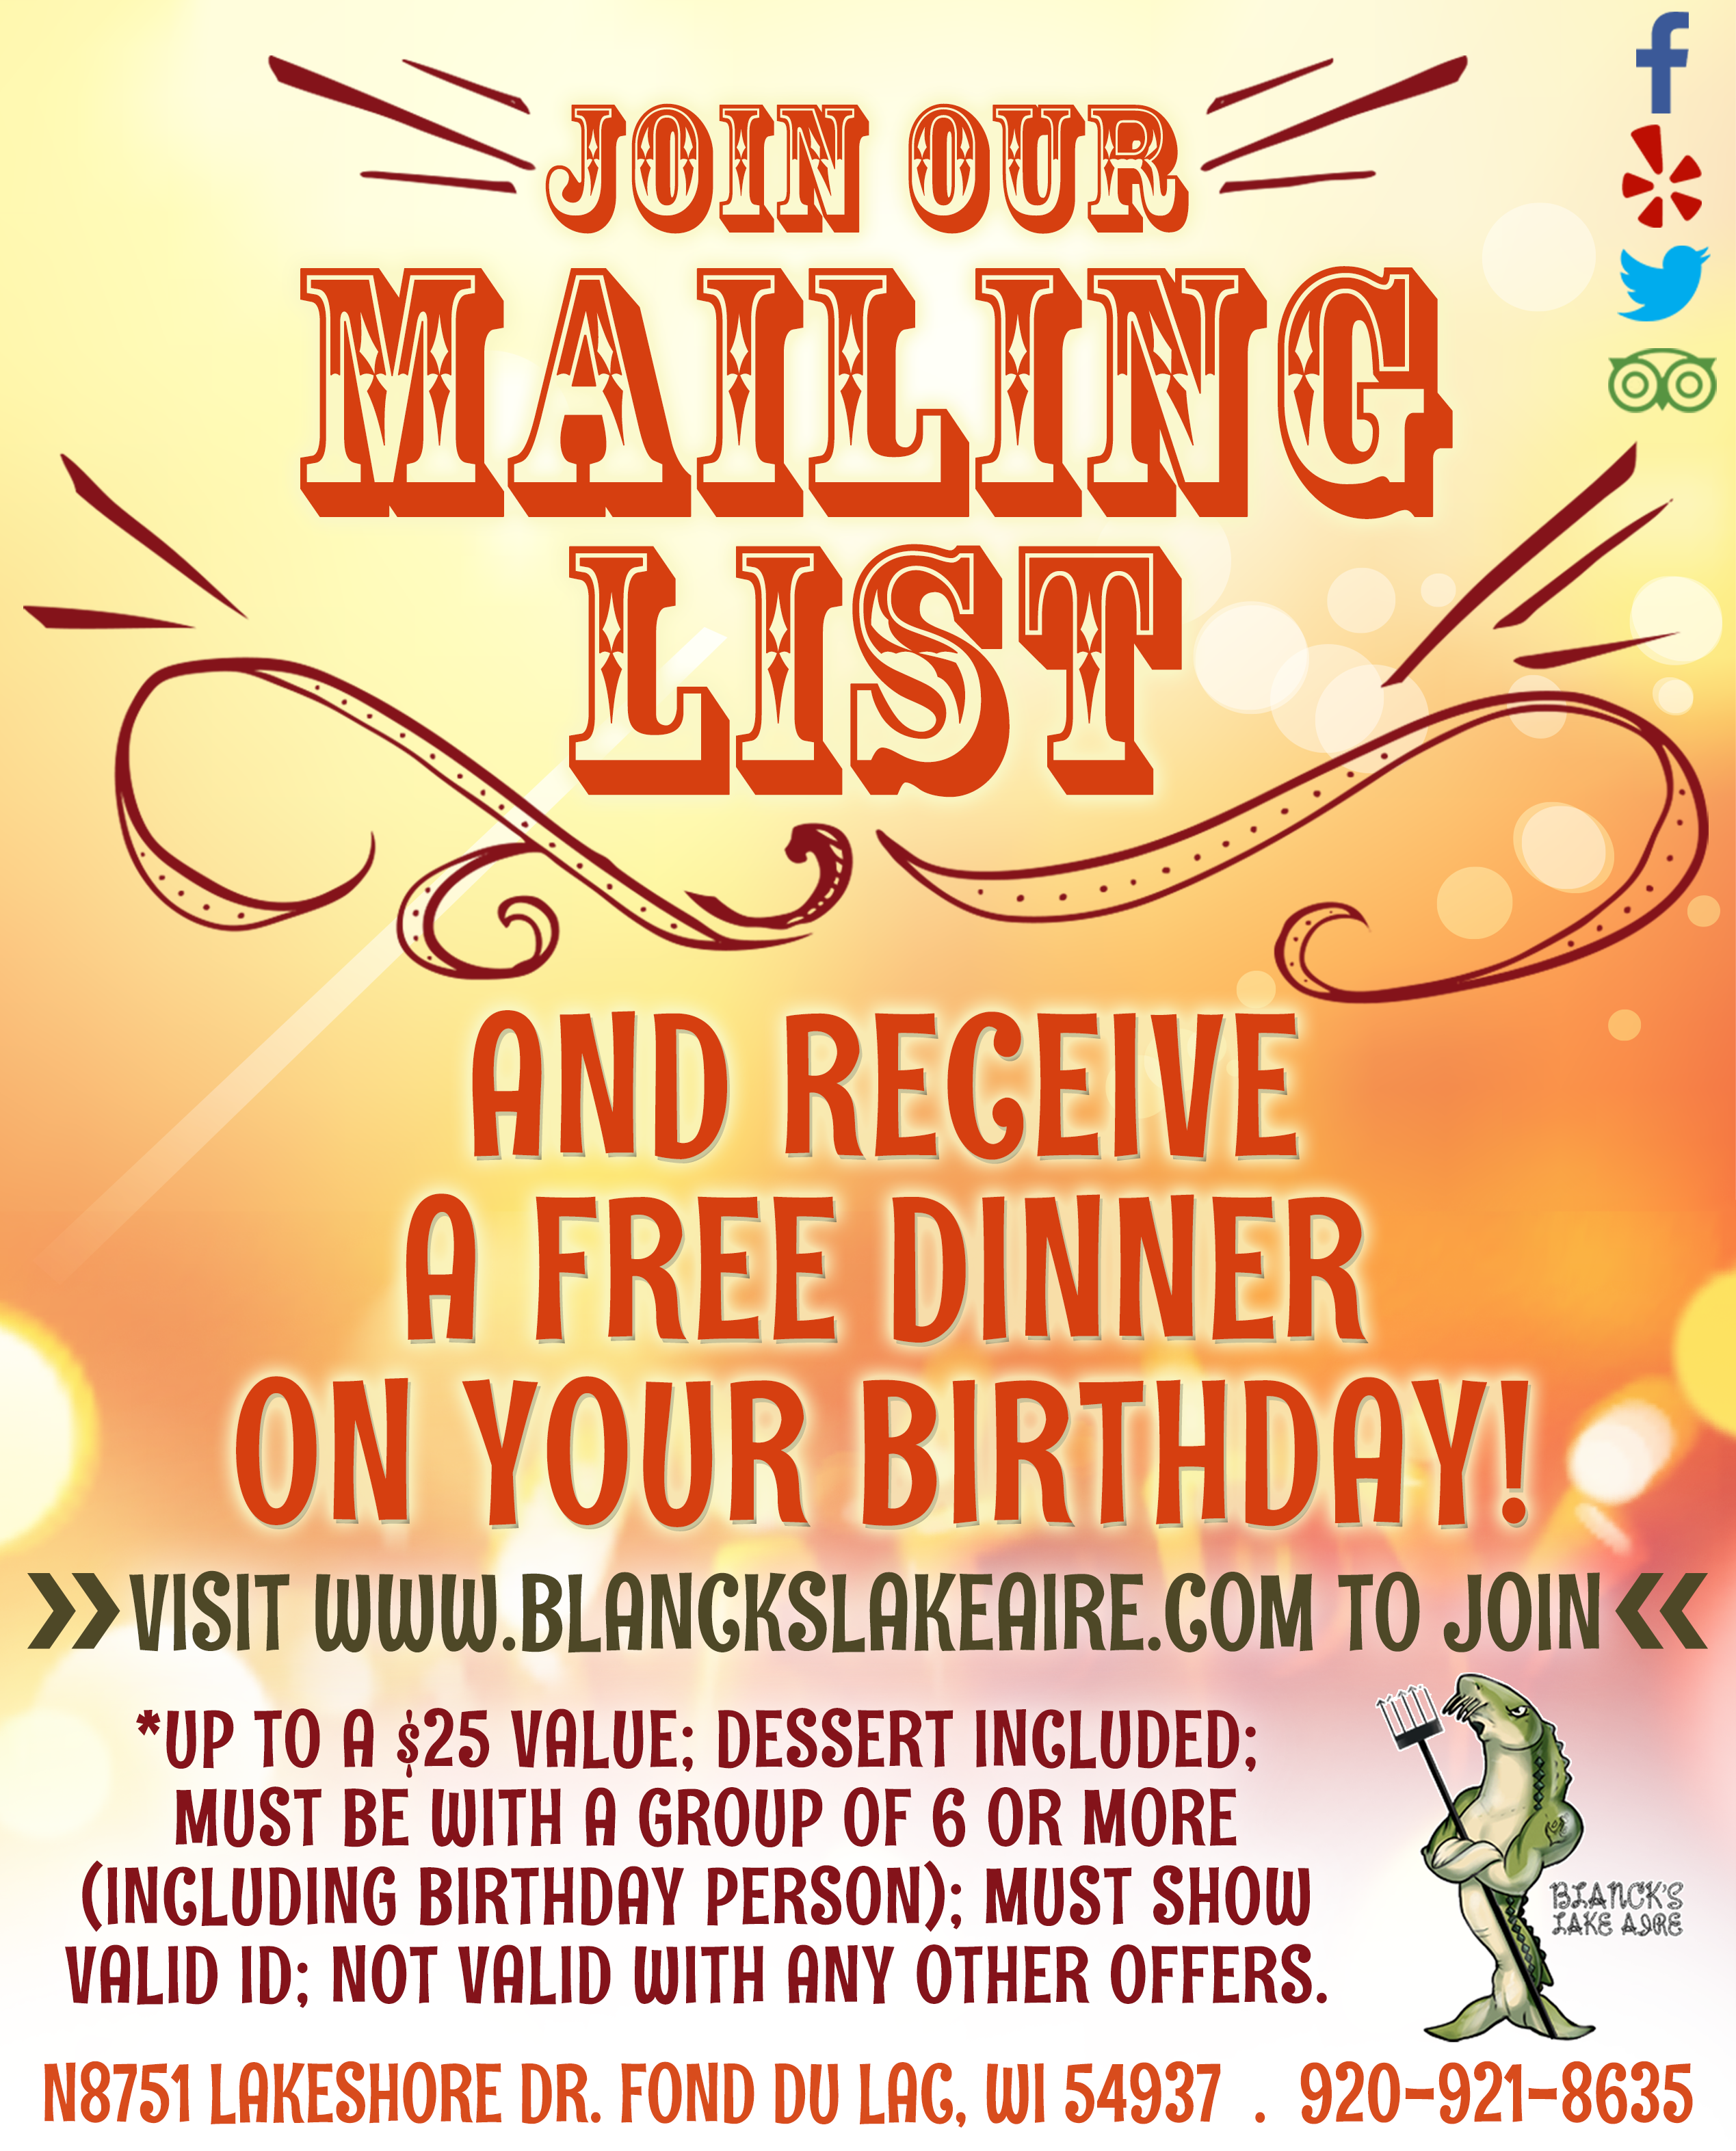 Join our mailing list and receive a free dinner on your birthday. Visit www.blackslakeaire.com to join. Up to a 25 dollar value. Dessert included. Must be with a group of 6 or more including birthday person. must show valid ID. not valid with any other offers. N8751 Lakeshore Drive, Fond Du Lac, Wisconsin 54937. 920-921-8635